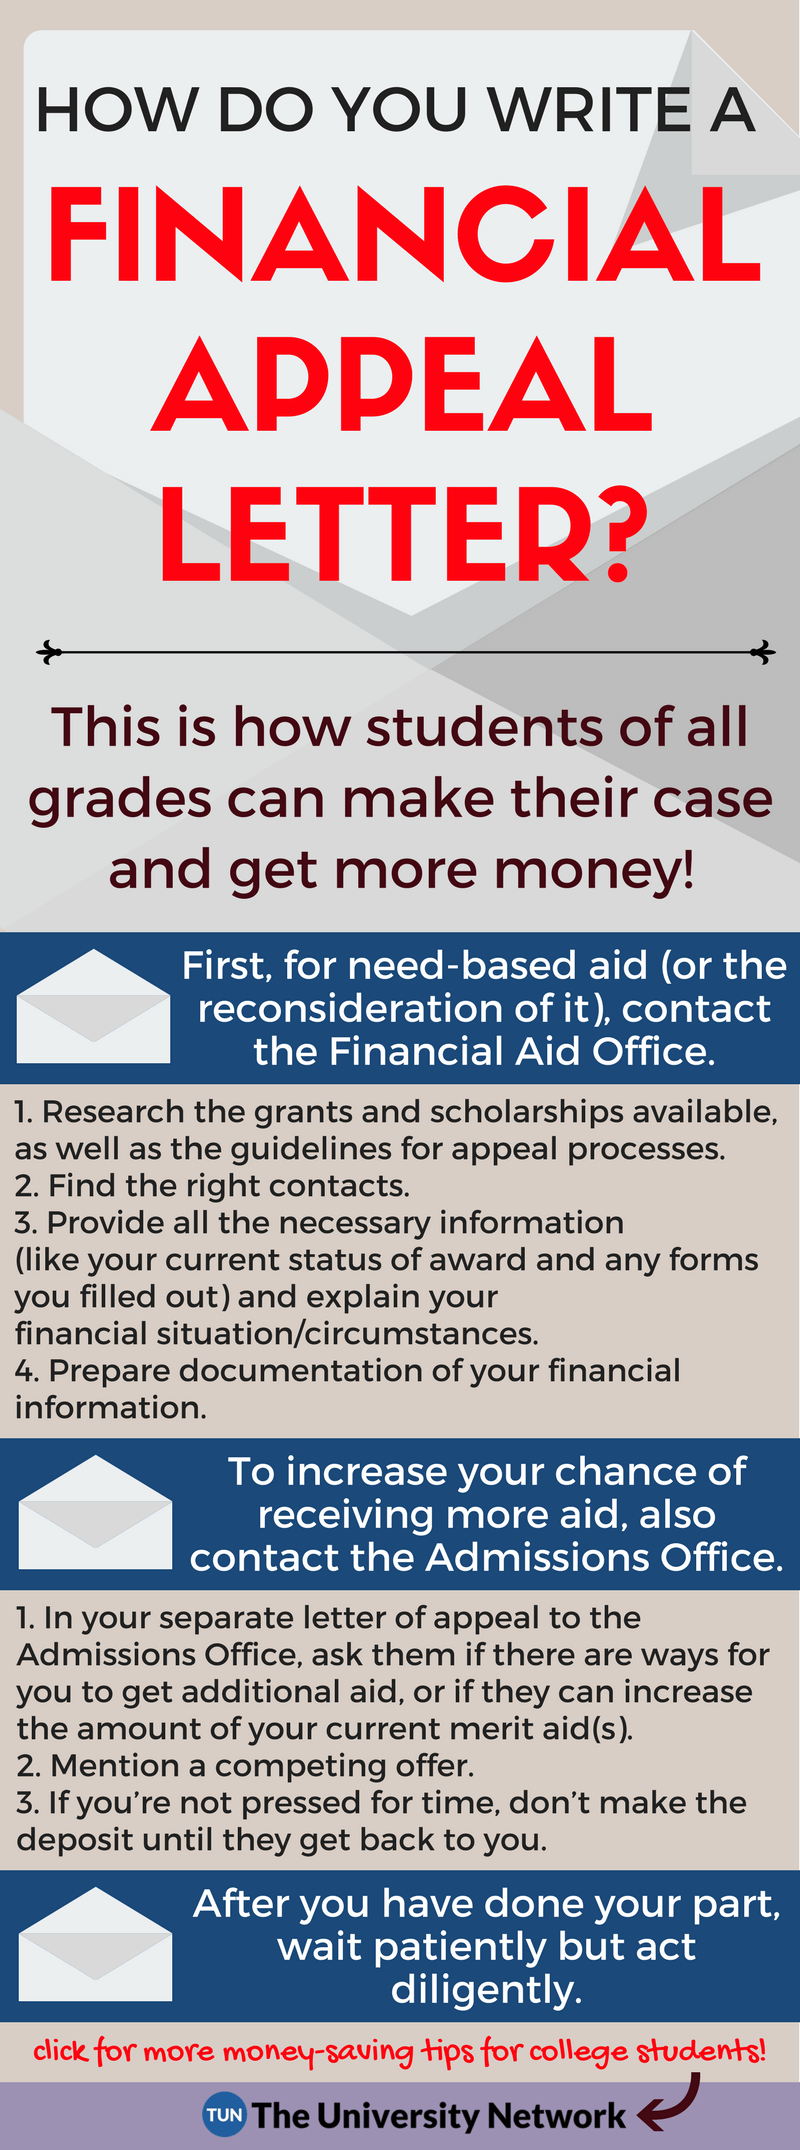 Financial aid appeal how to make your case and get more money the financial aid appeal how to make your case and get more moneyg expocarfo